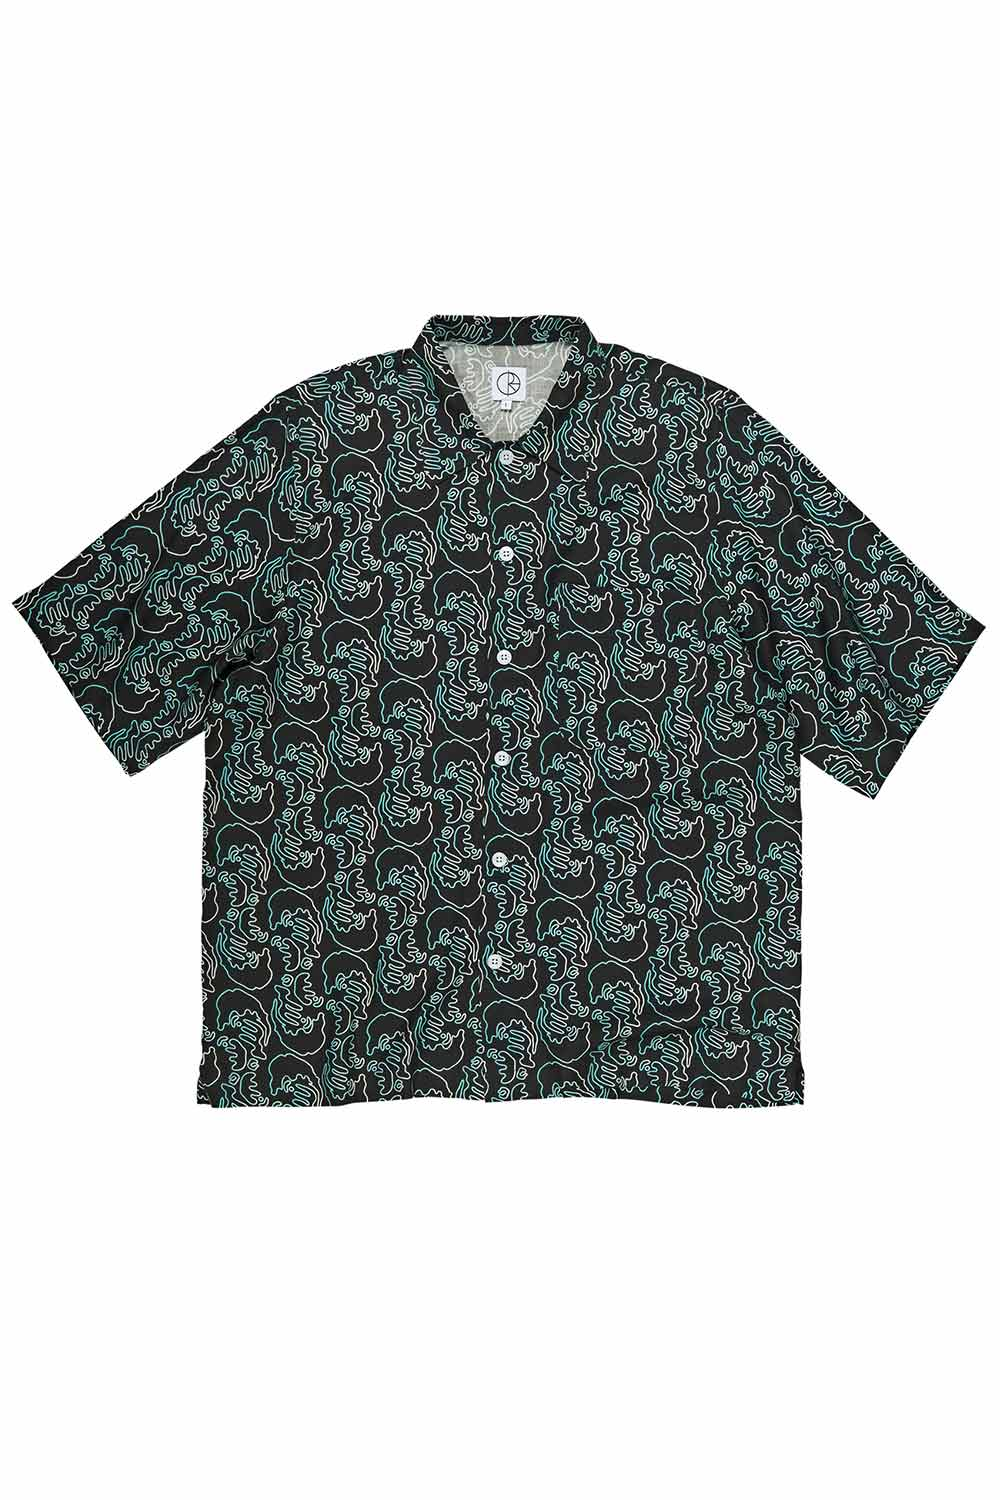 Polar Skate Co Art Shirt Faces - Black | Buy Polar Skate Co Online